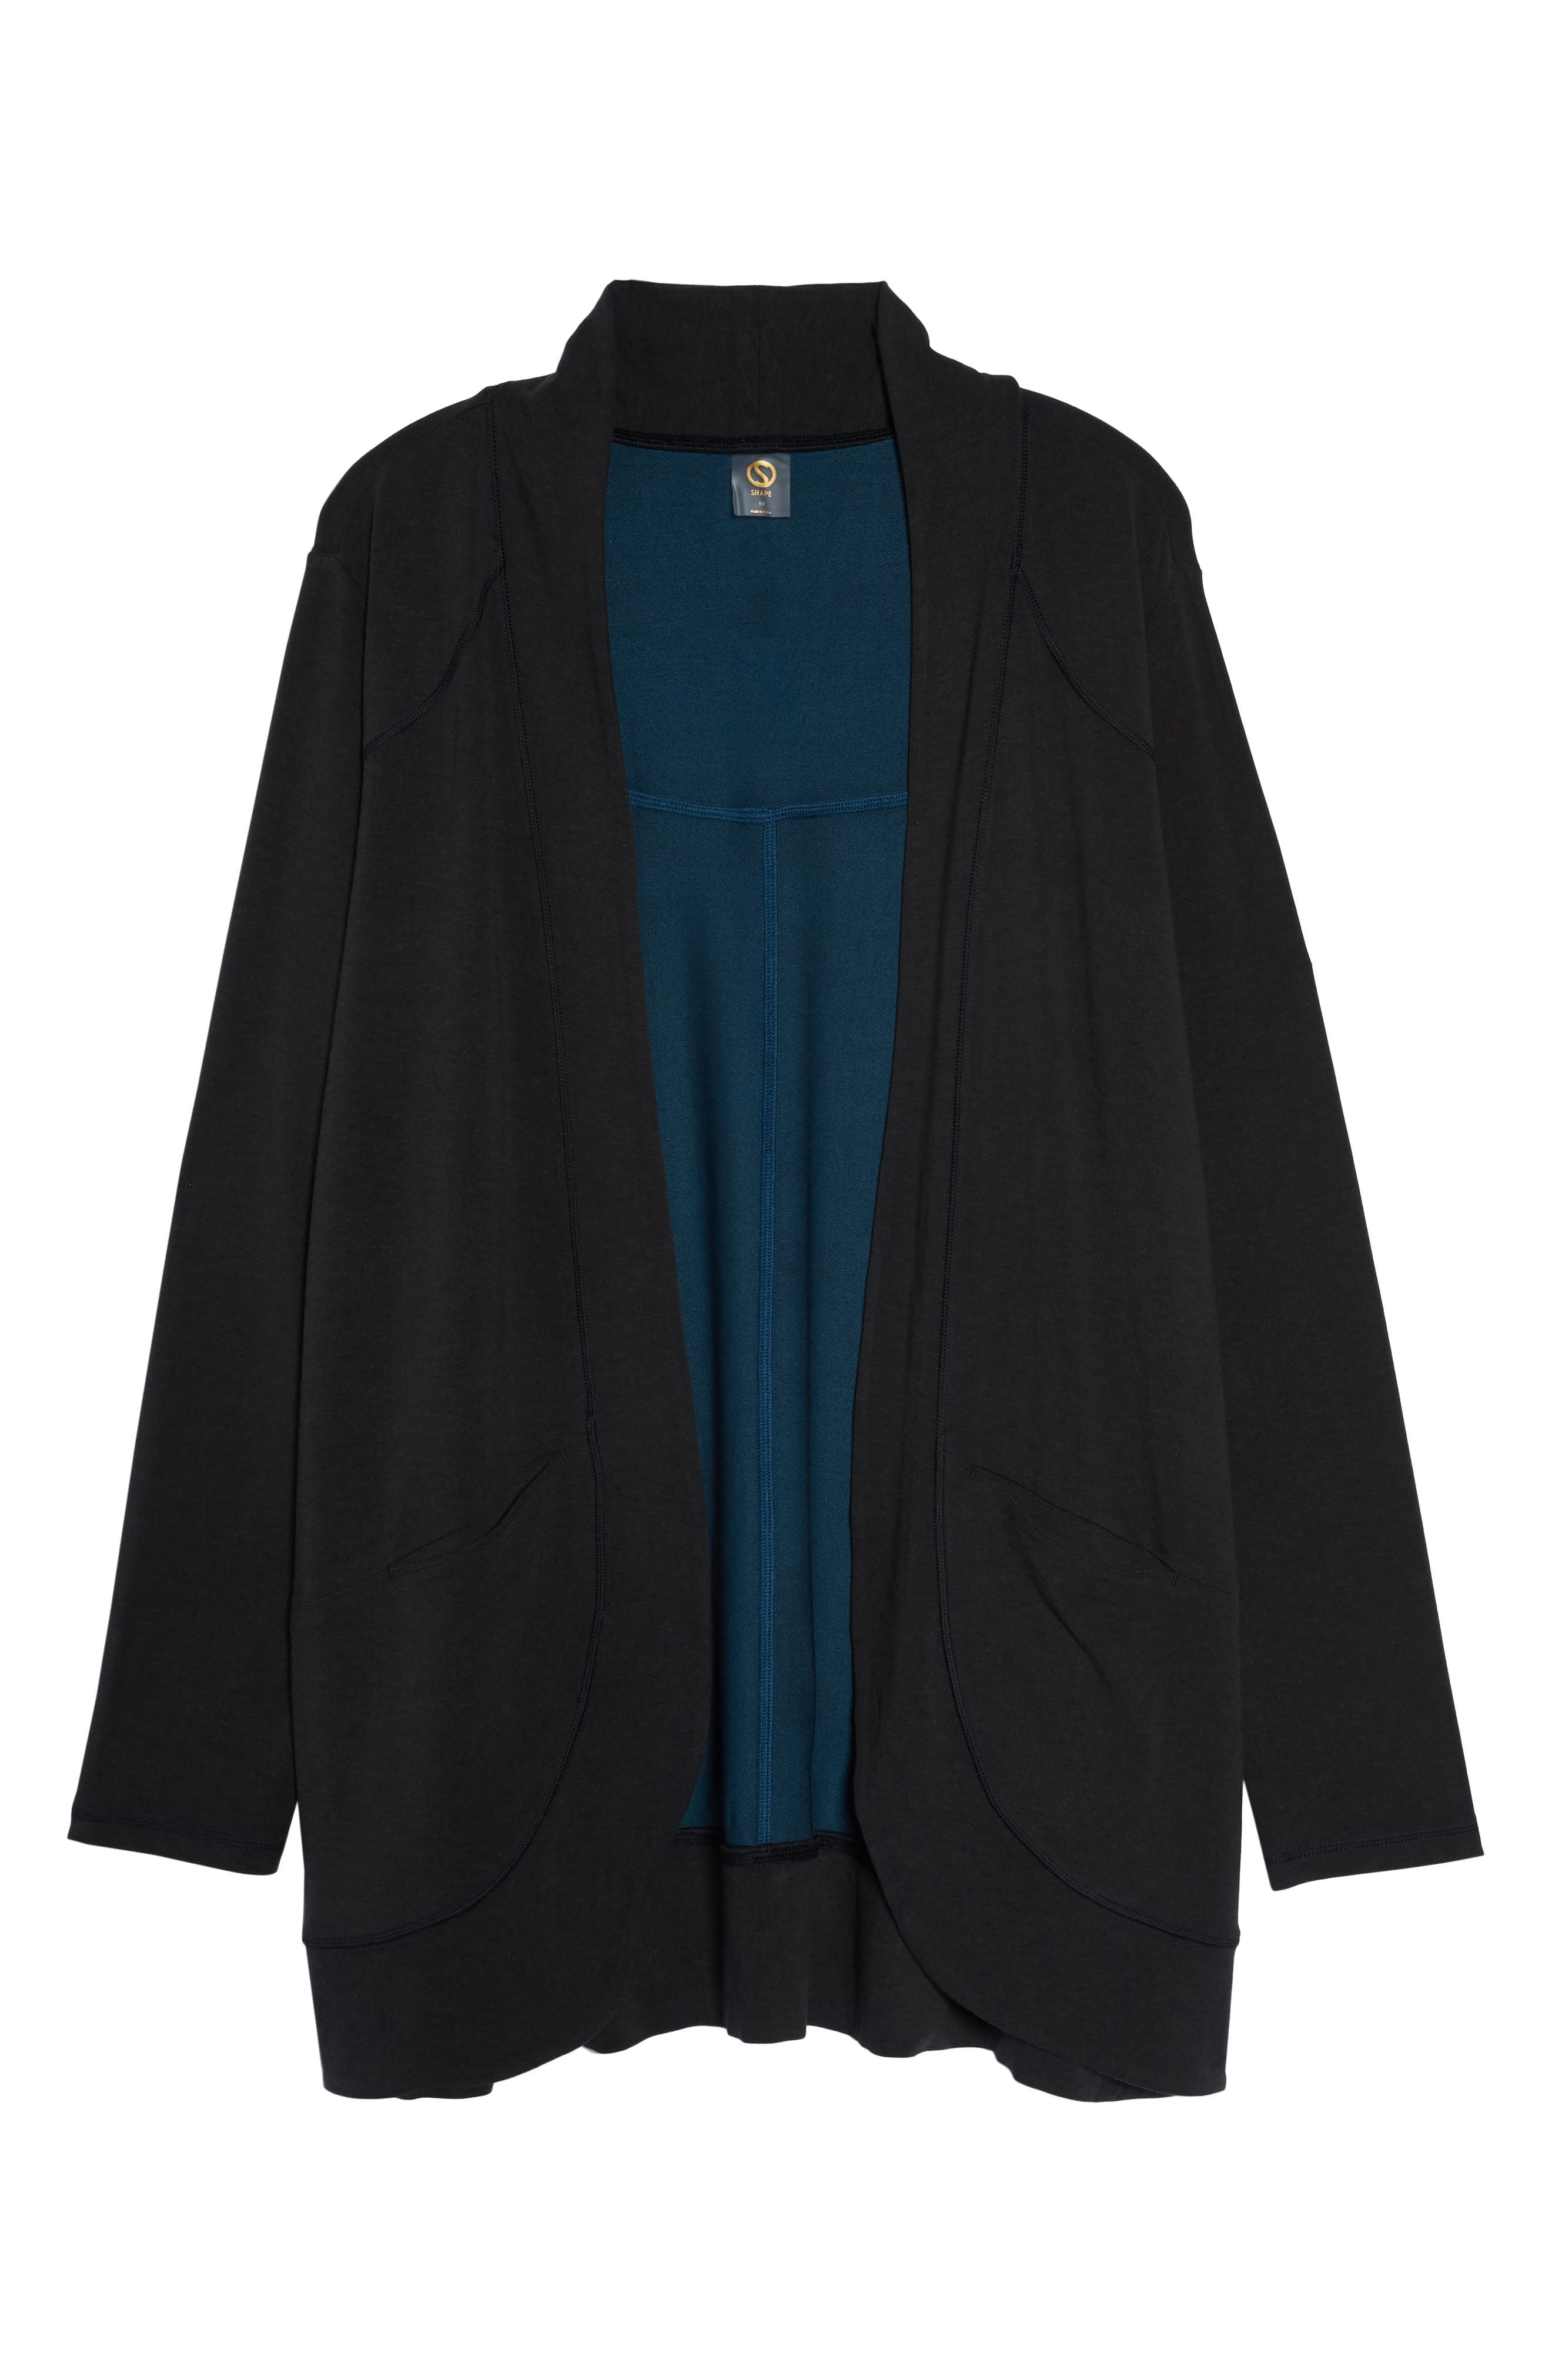 French Terry Cardigan,                             Alternate thumbnail 6, color,                             CHARCOAL BLACK / NAVY